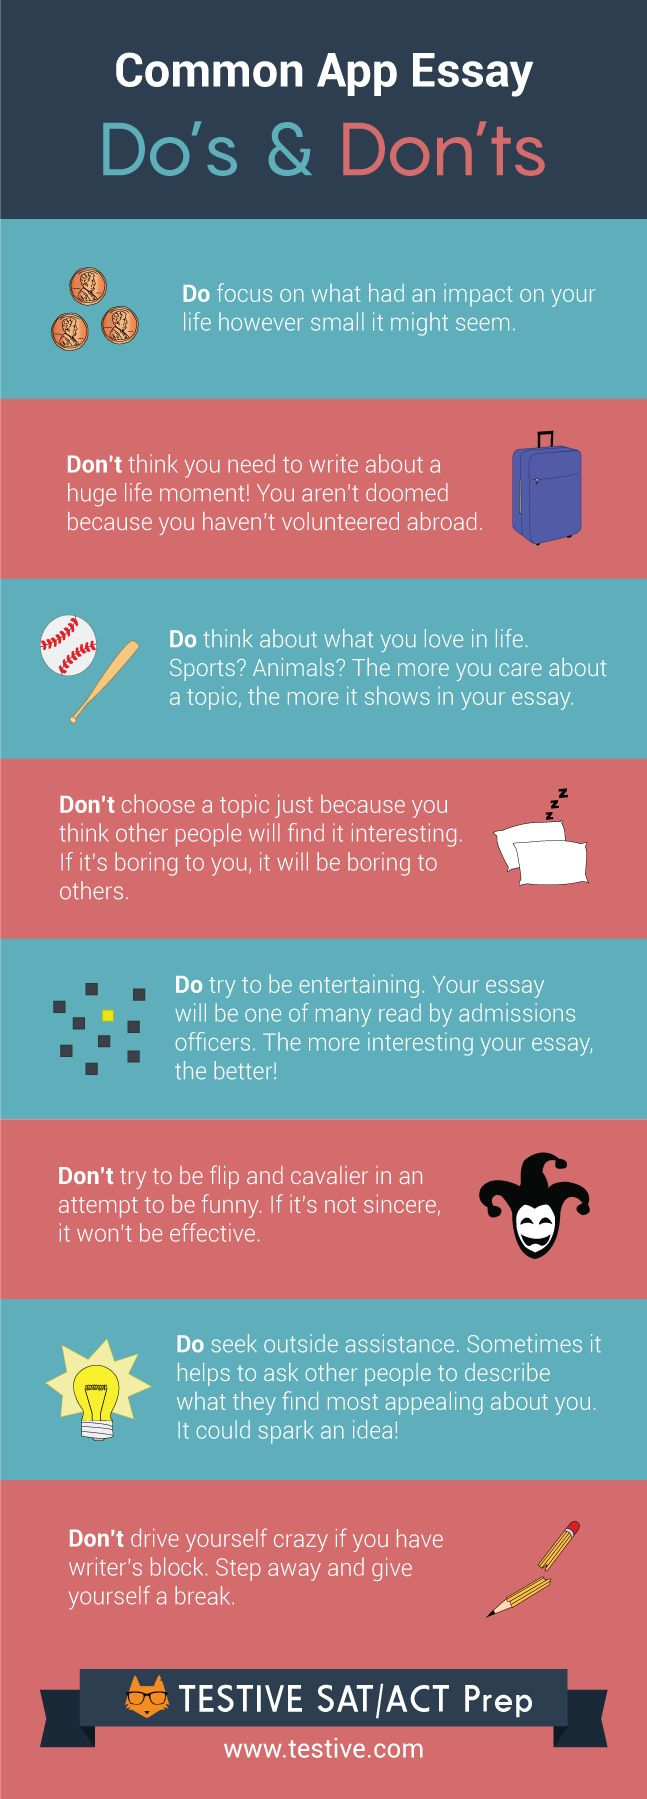 Working on your Common App personal statement? Here's some advice on what you should write about.